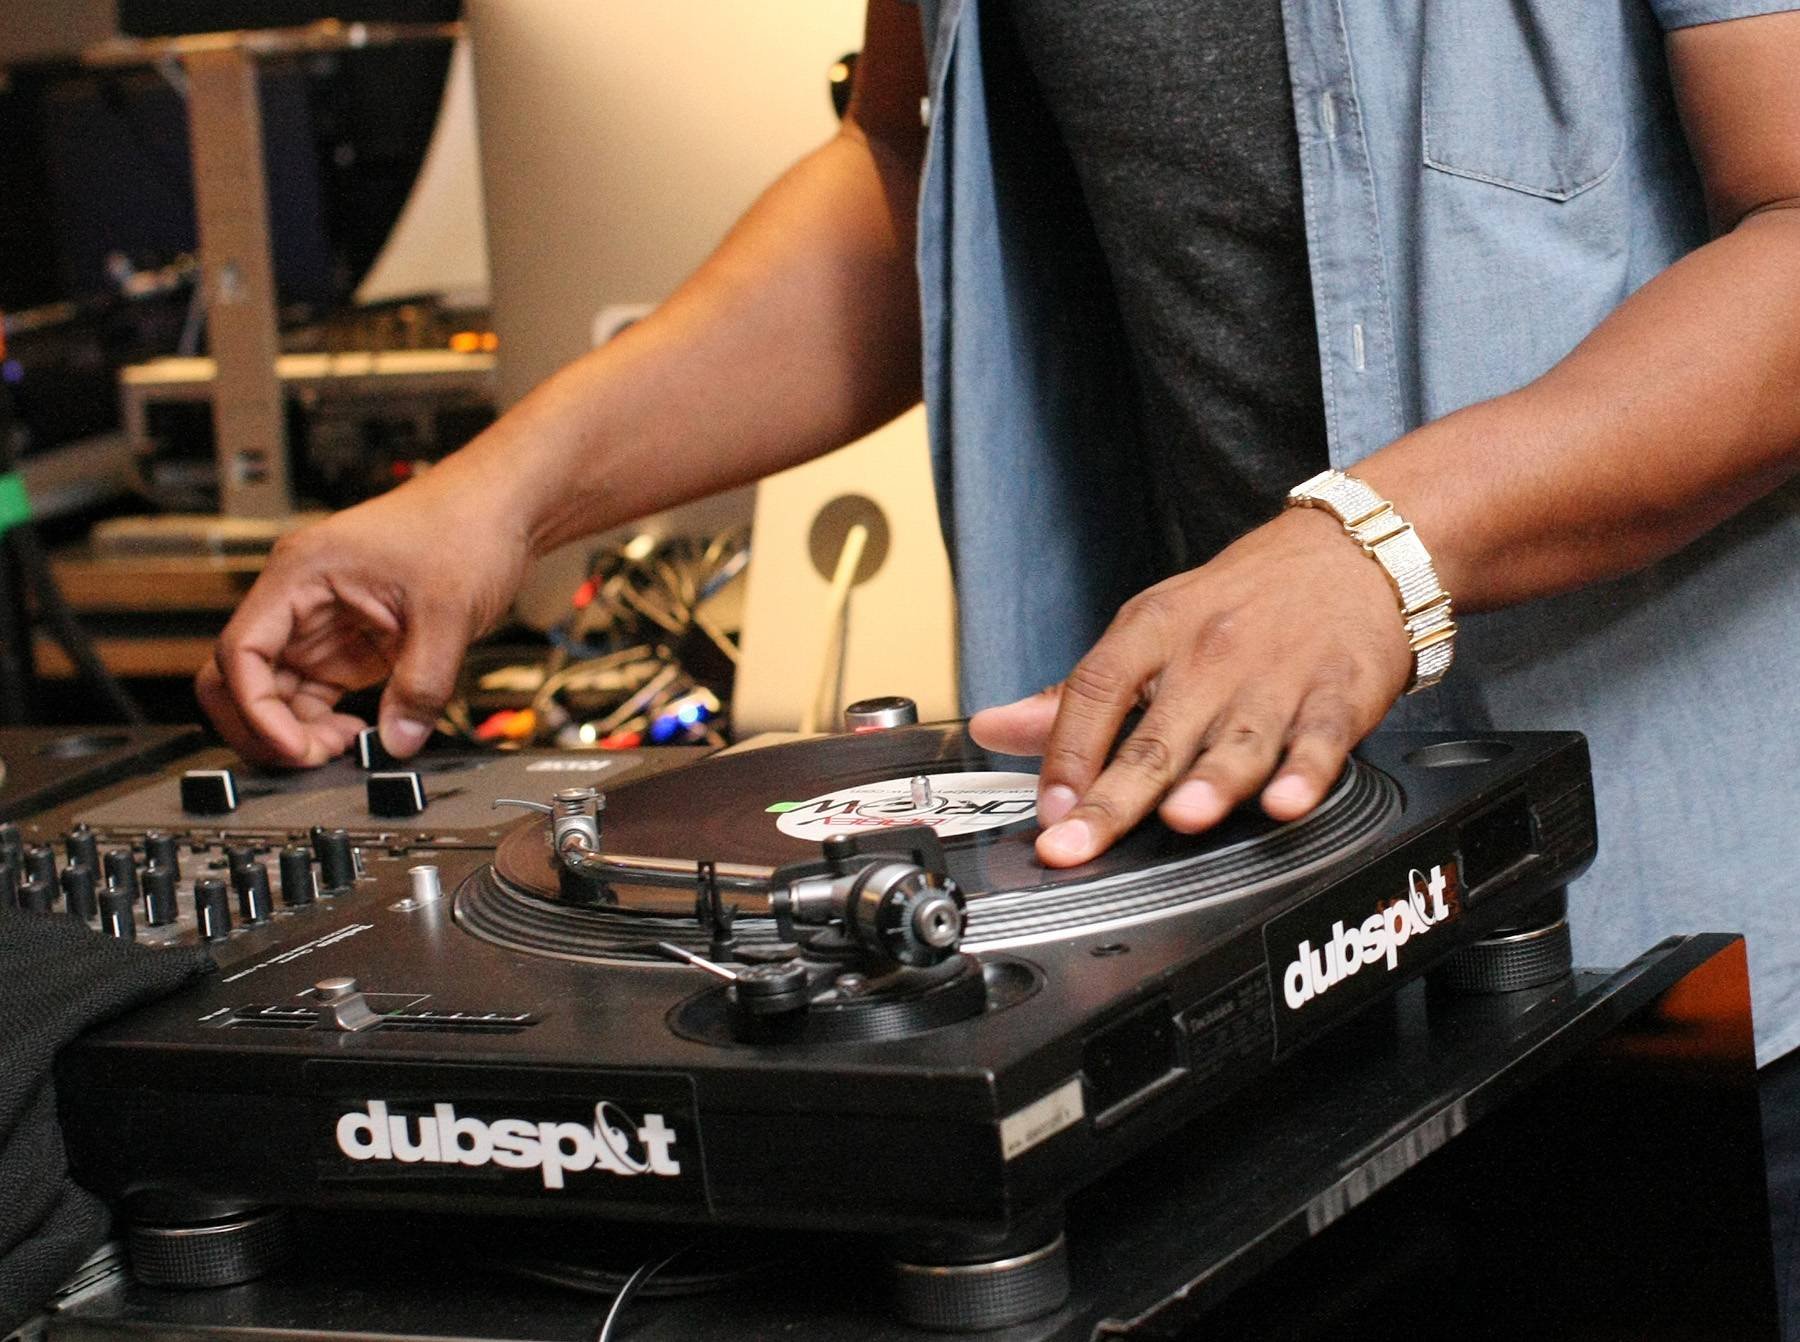 /content/dam/betcom/images/2013/09/Shows/106-and-Park-09-11-09-20/091313-shows-106-park-dubspot-dj-turntables-spinning.jpg